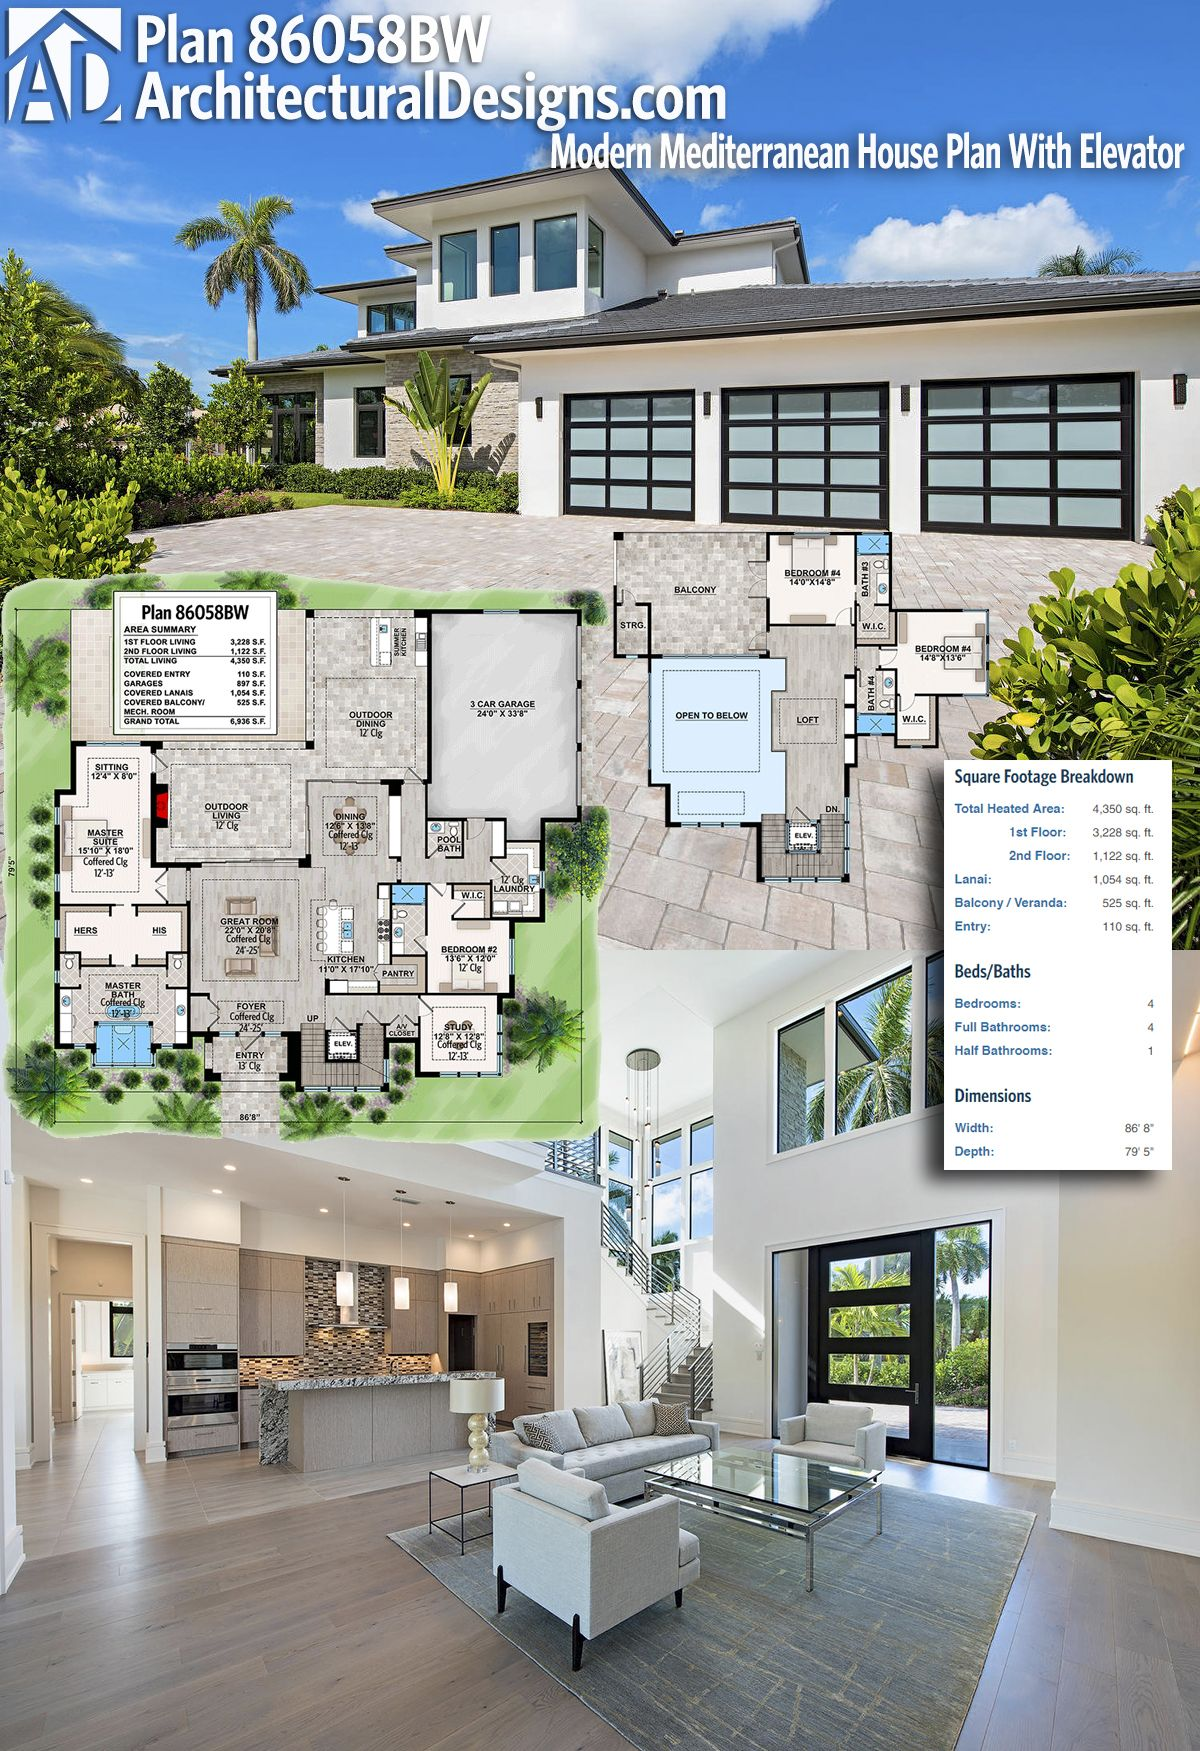 Architectural designs house plan bw gives you over square feet with bedrooms also best plans images on pinterest architecture home rh